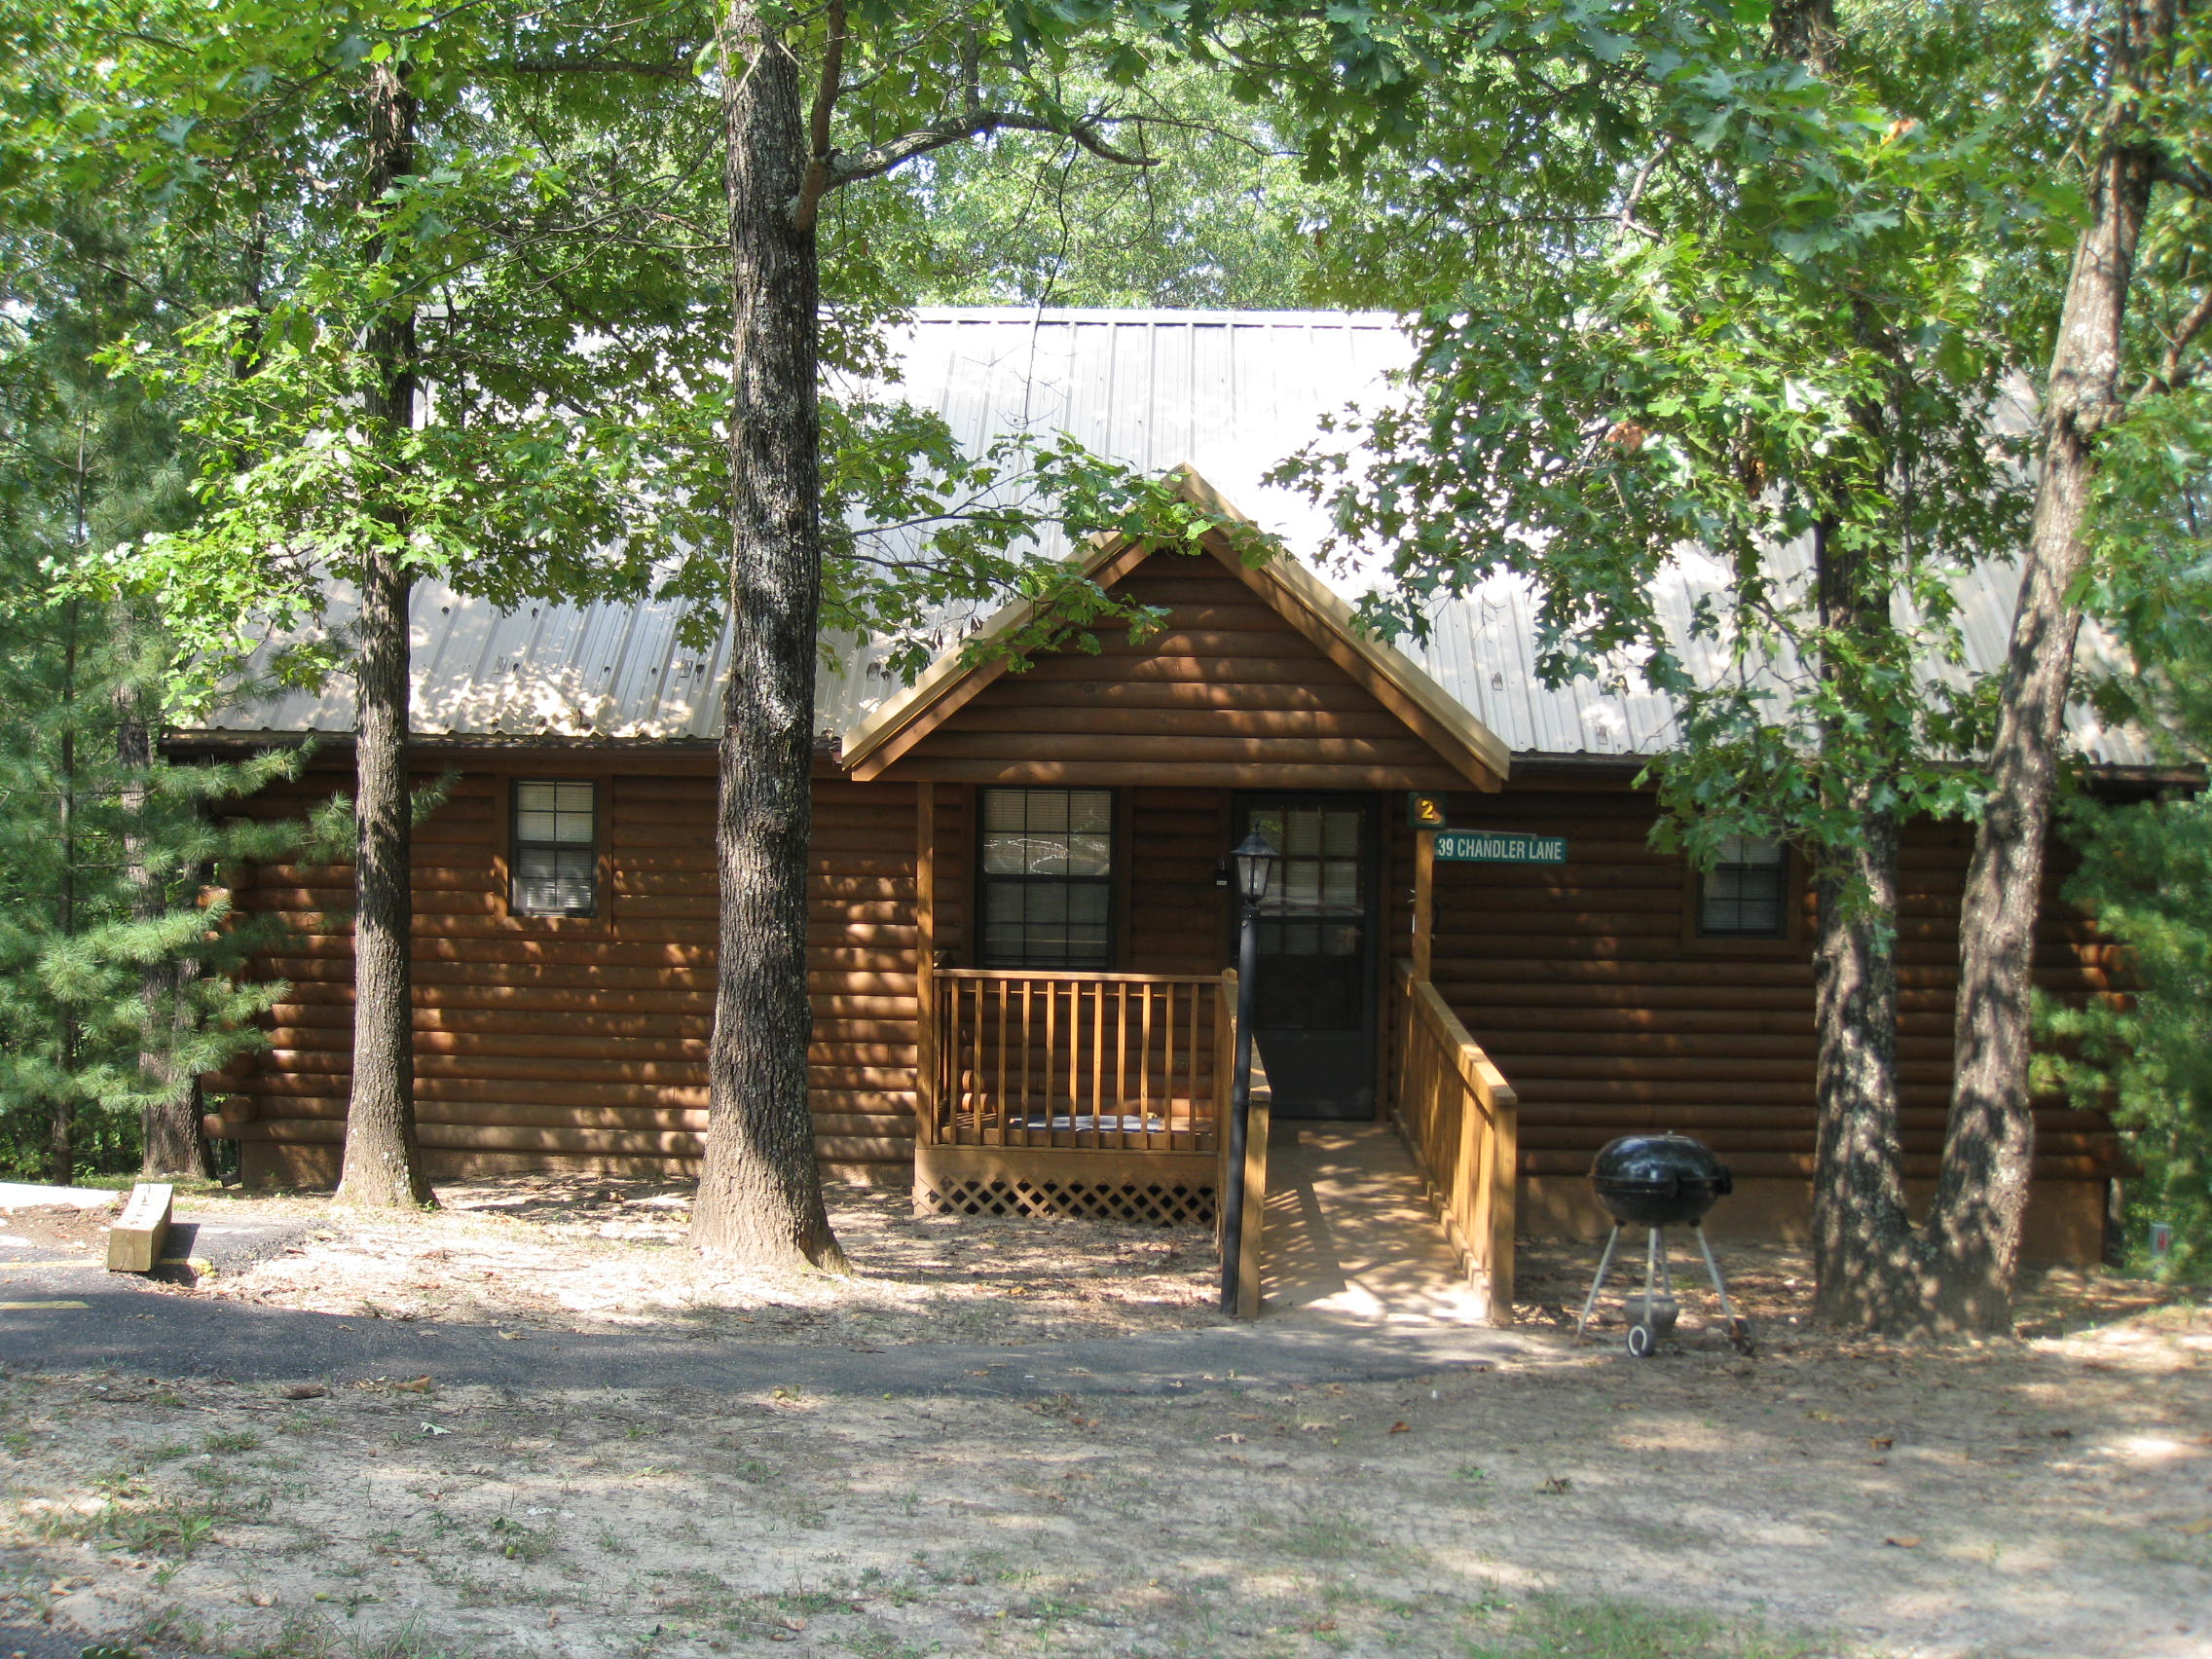 decorating with ideas amazing of home ozarks designing cabin cabins decoration rentals lake on epic the